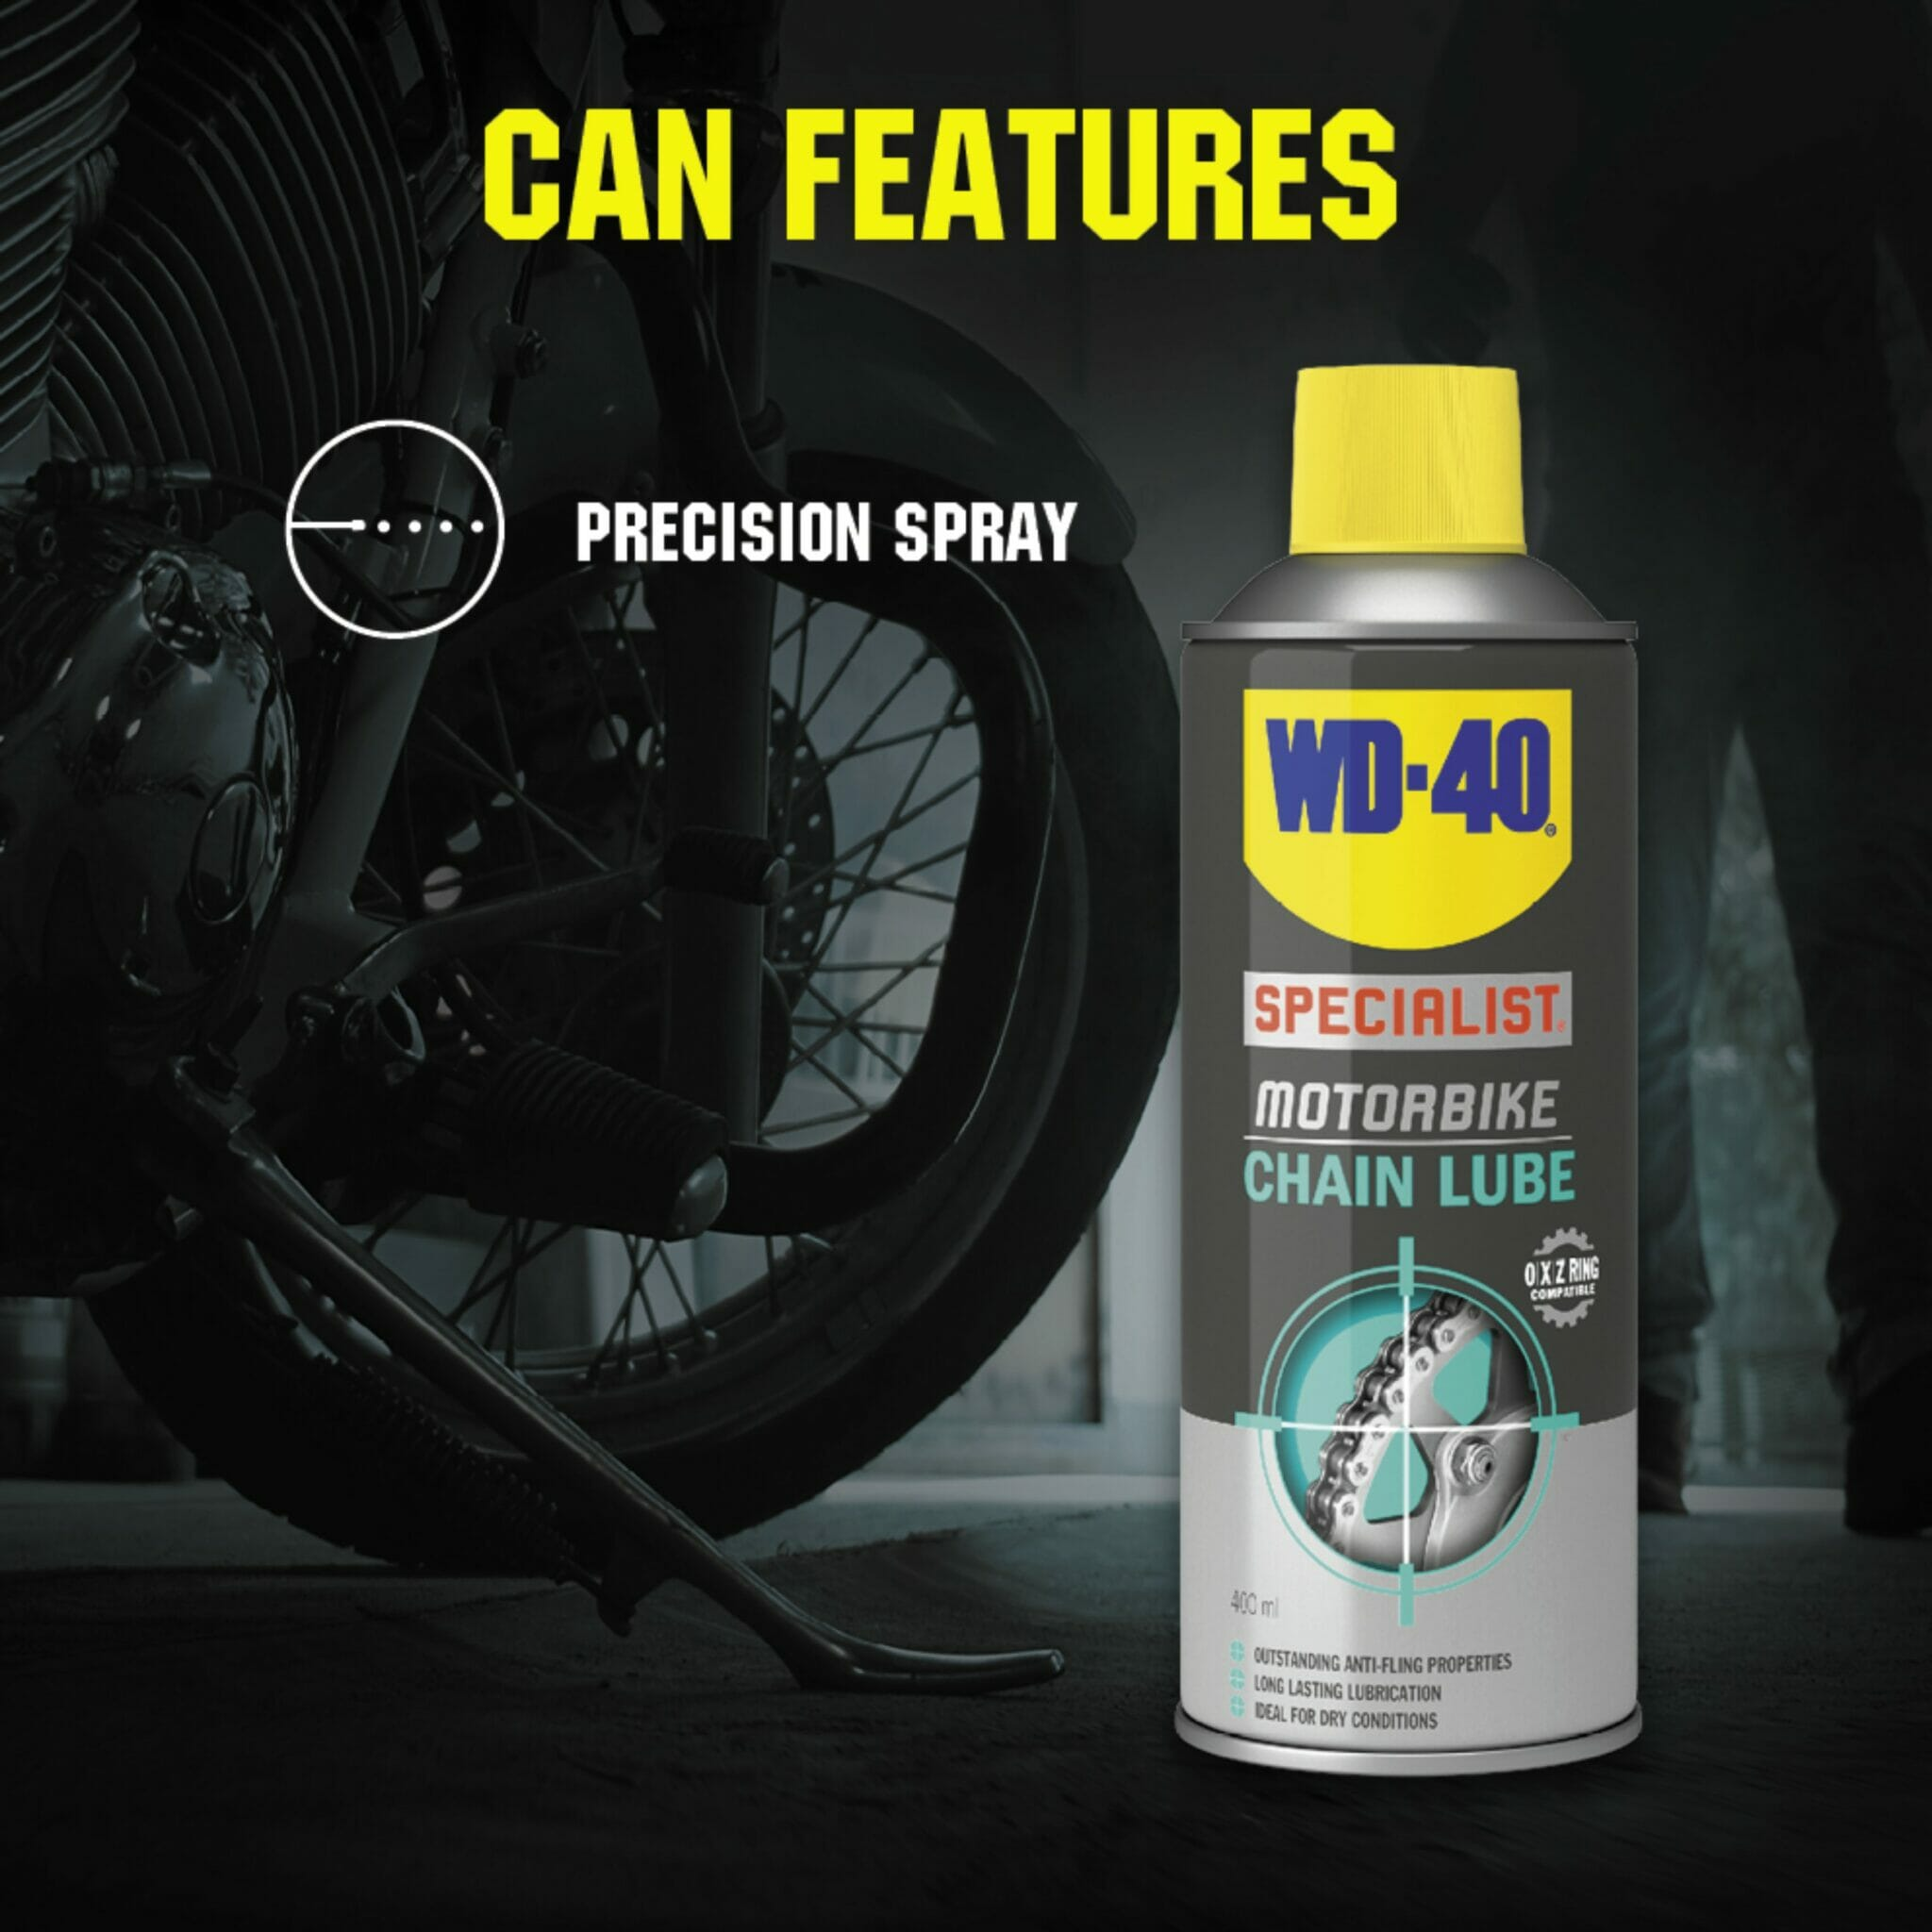 uk wd40 specialist motorbike chain lube 400ml can features lifestyle background